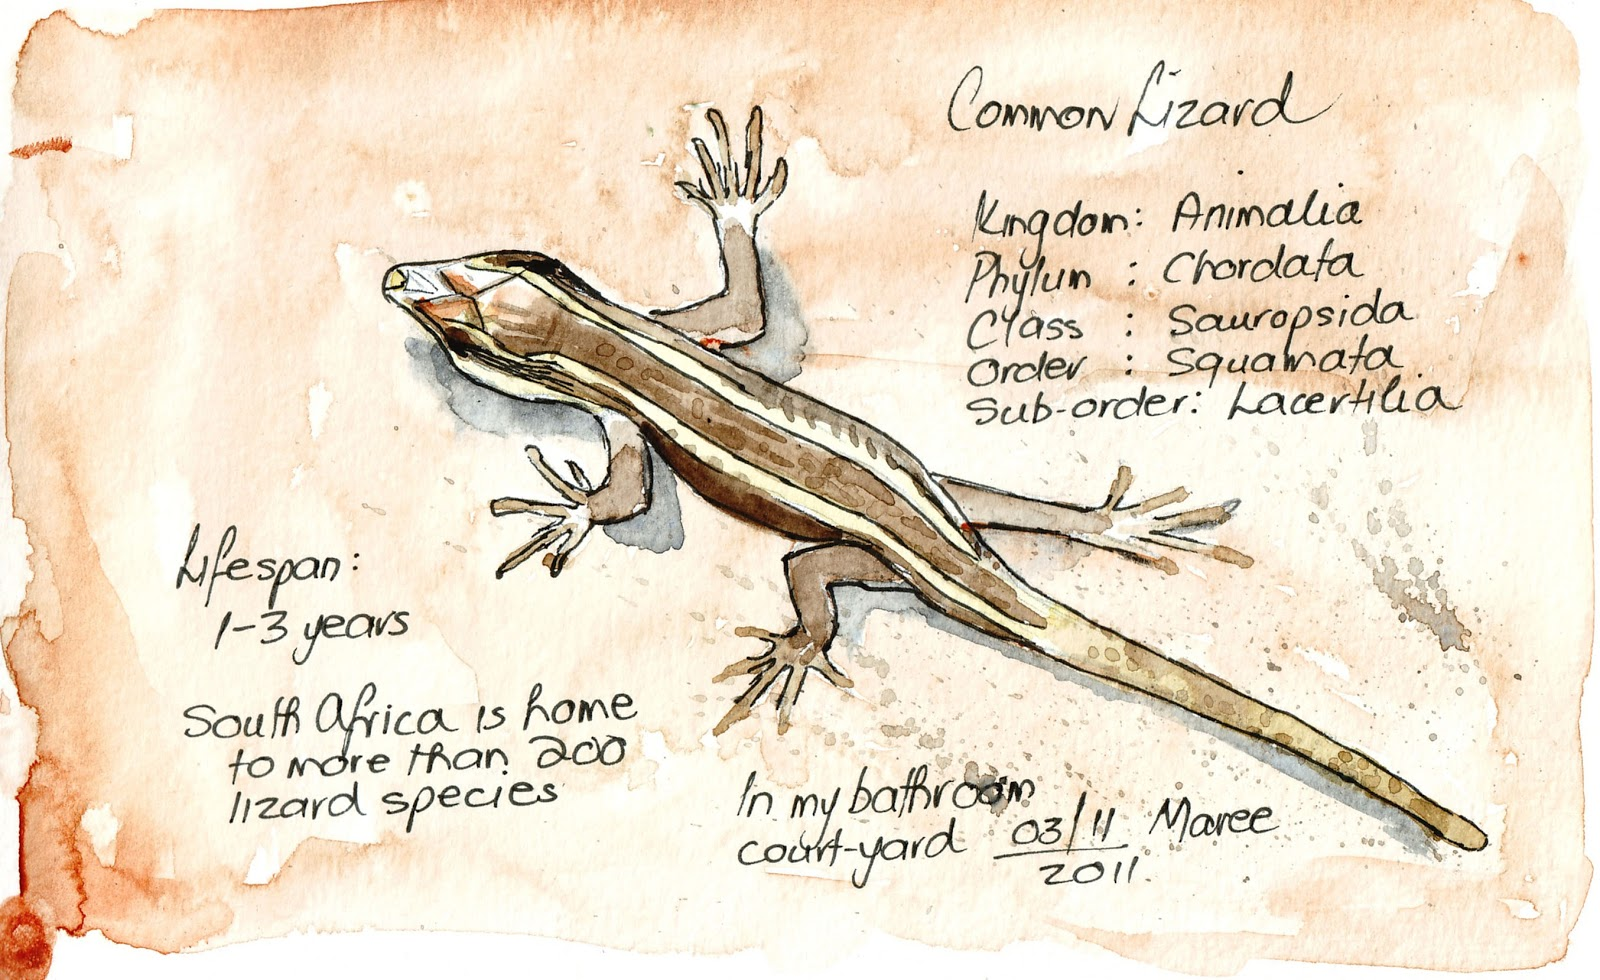 Labelled Diagram Of Agama Lizard L14 Plug Wiring Hedgie 39s Nature Journal My Common Lizards